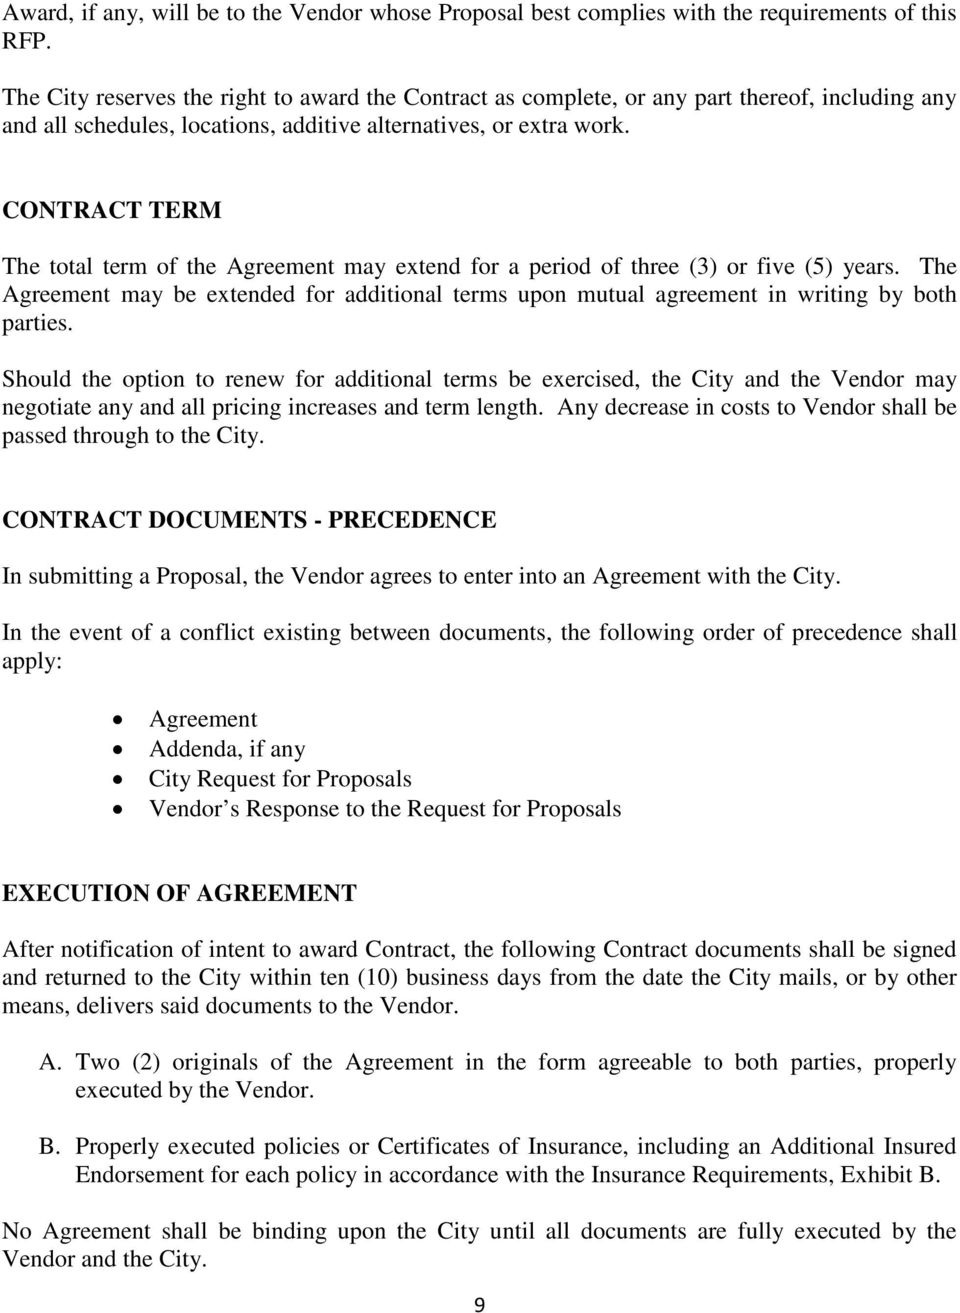 CONTRACT TERM The total term of the Agreement may extend for a period of three (3) or five (5) years.